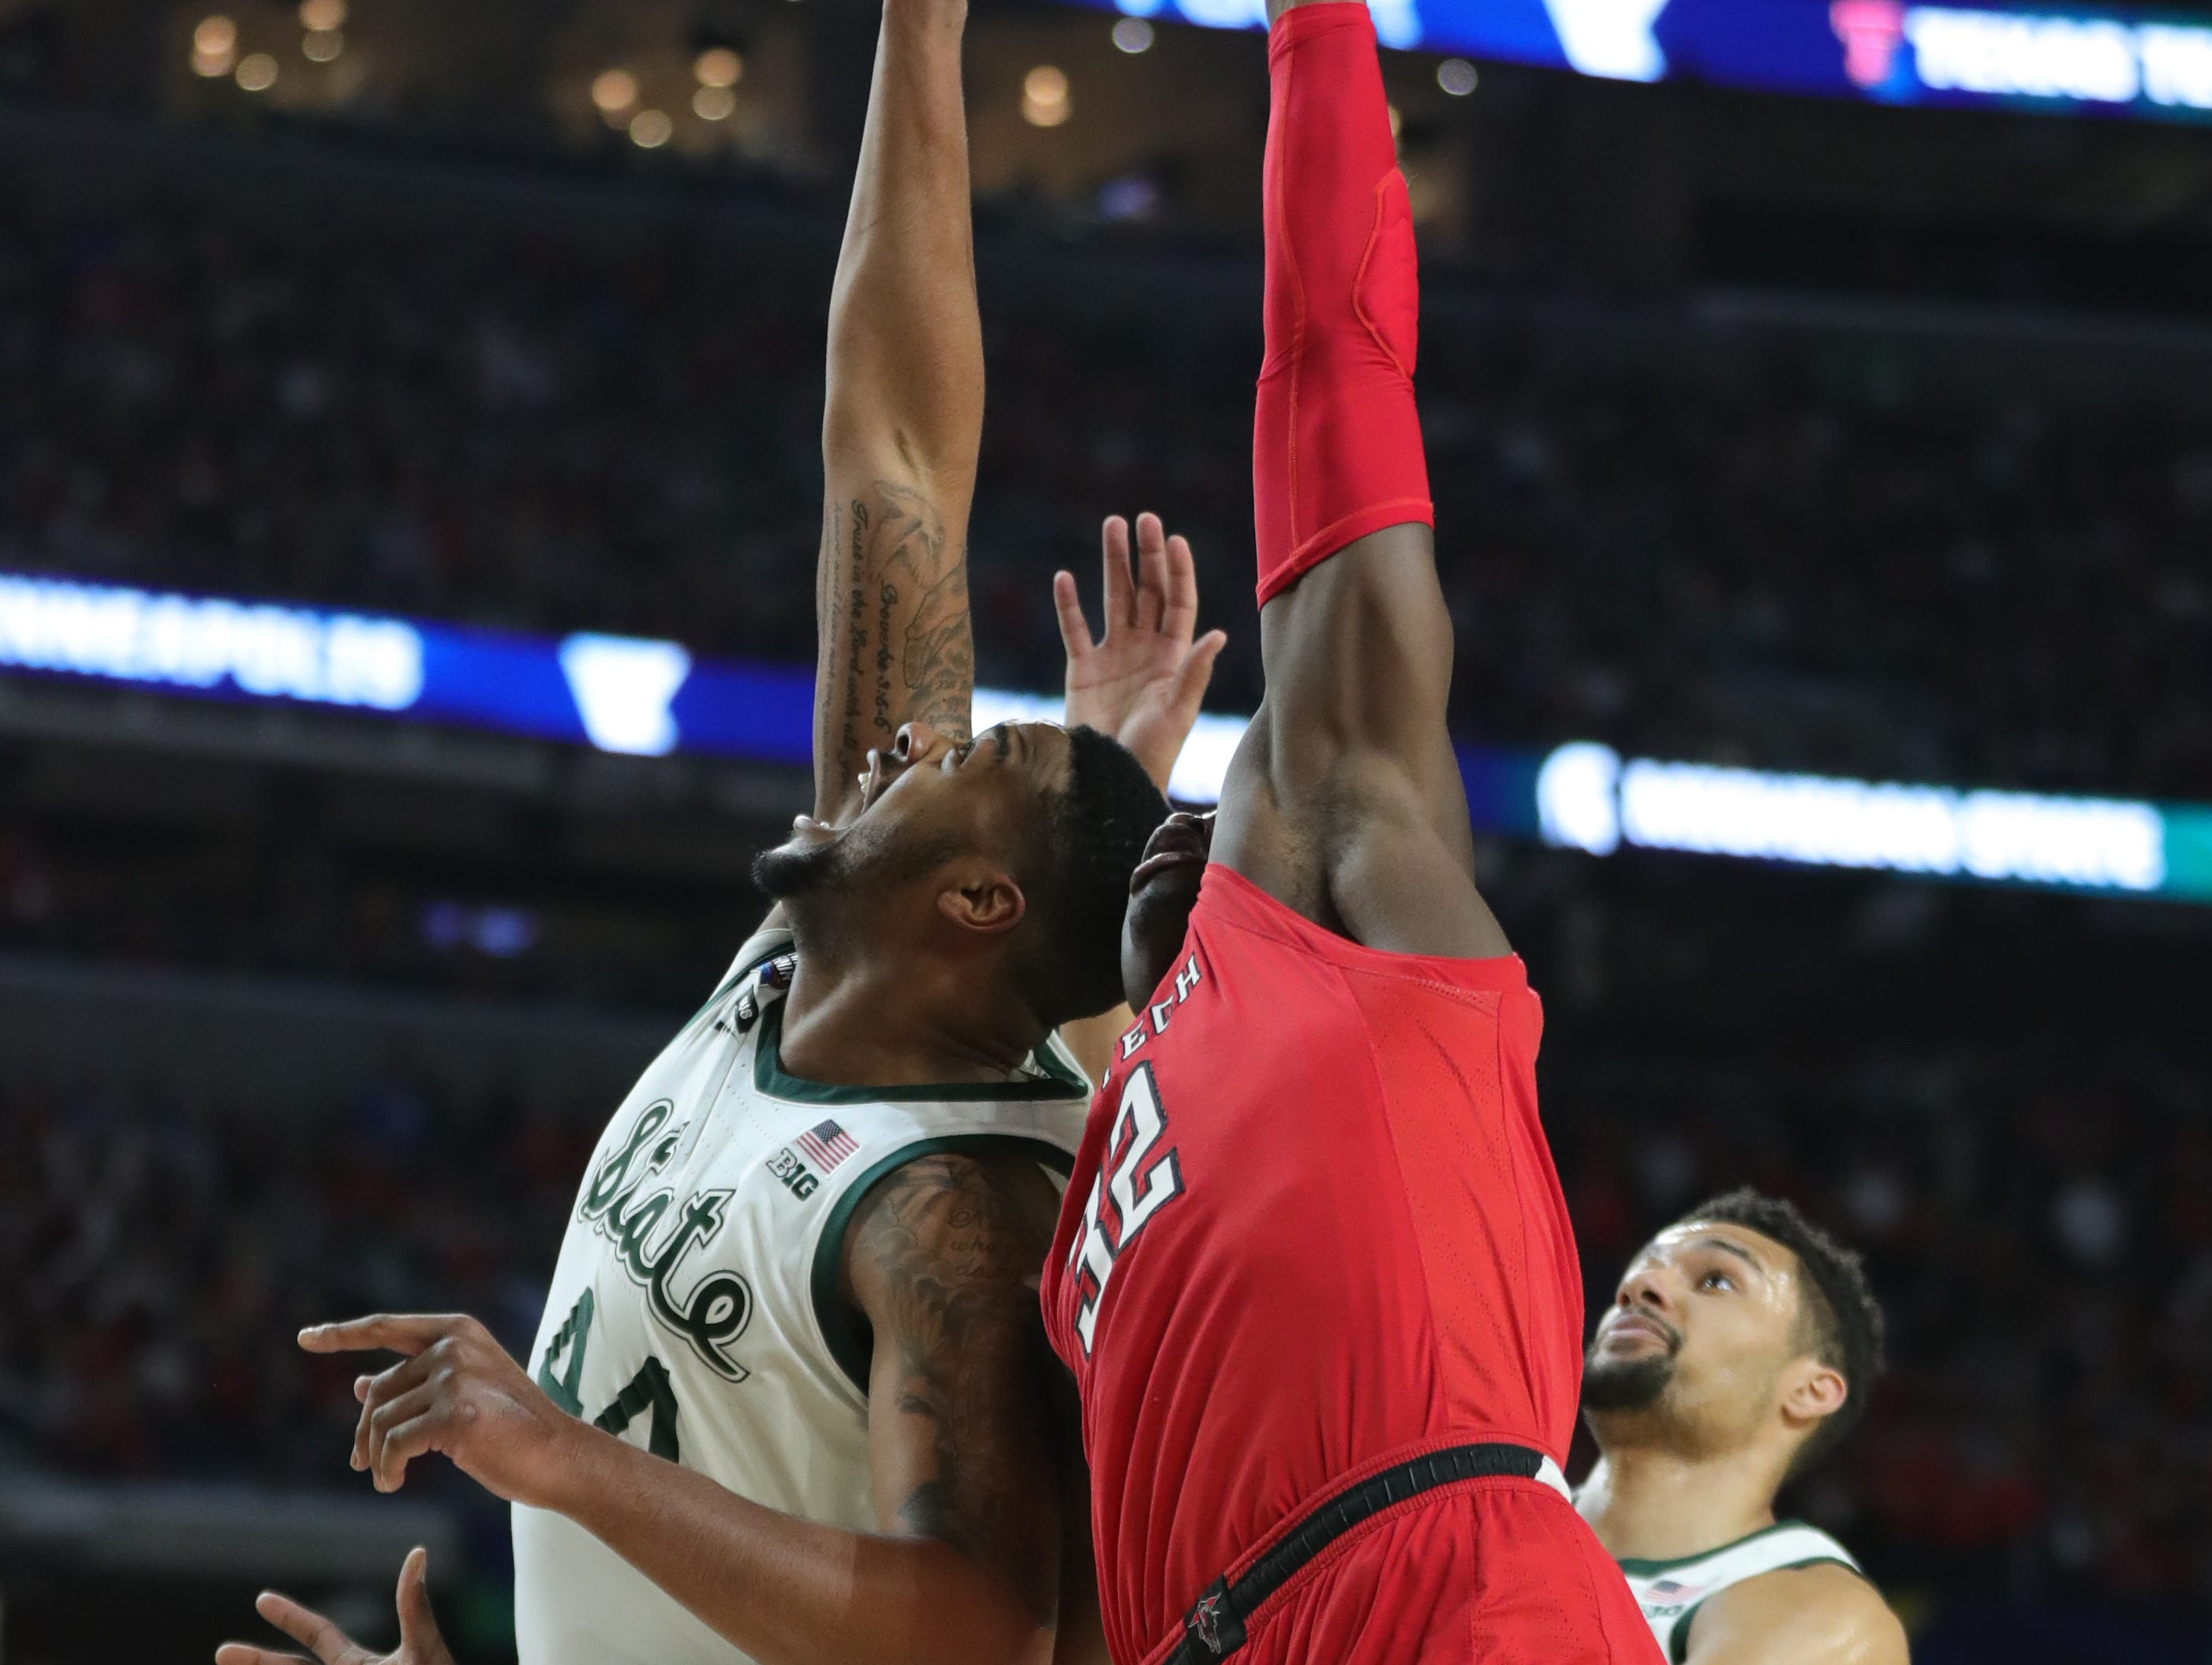 Michigan State Nick Ward (44) and Texas Tech forward Josh Mballa (32) reach for the in the first half of their NCAA Final Four game at U.S. Bank Stadium in Minneapolis, Minnesota on Saturday, April 06, 2019.